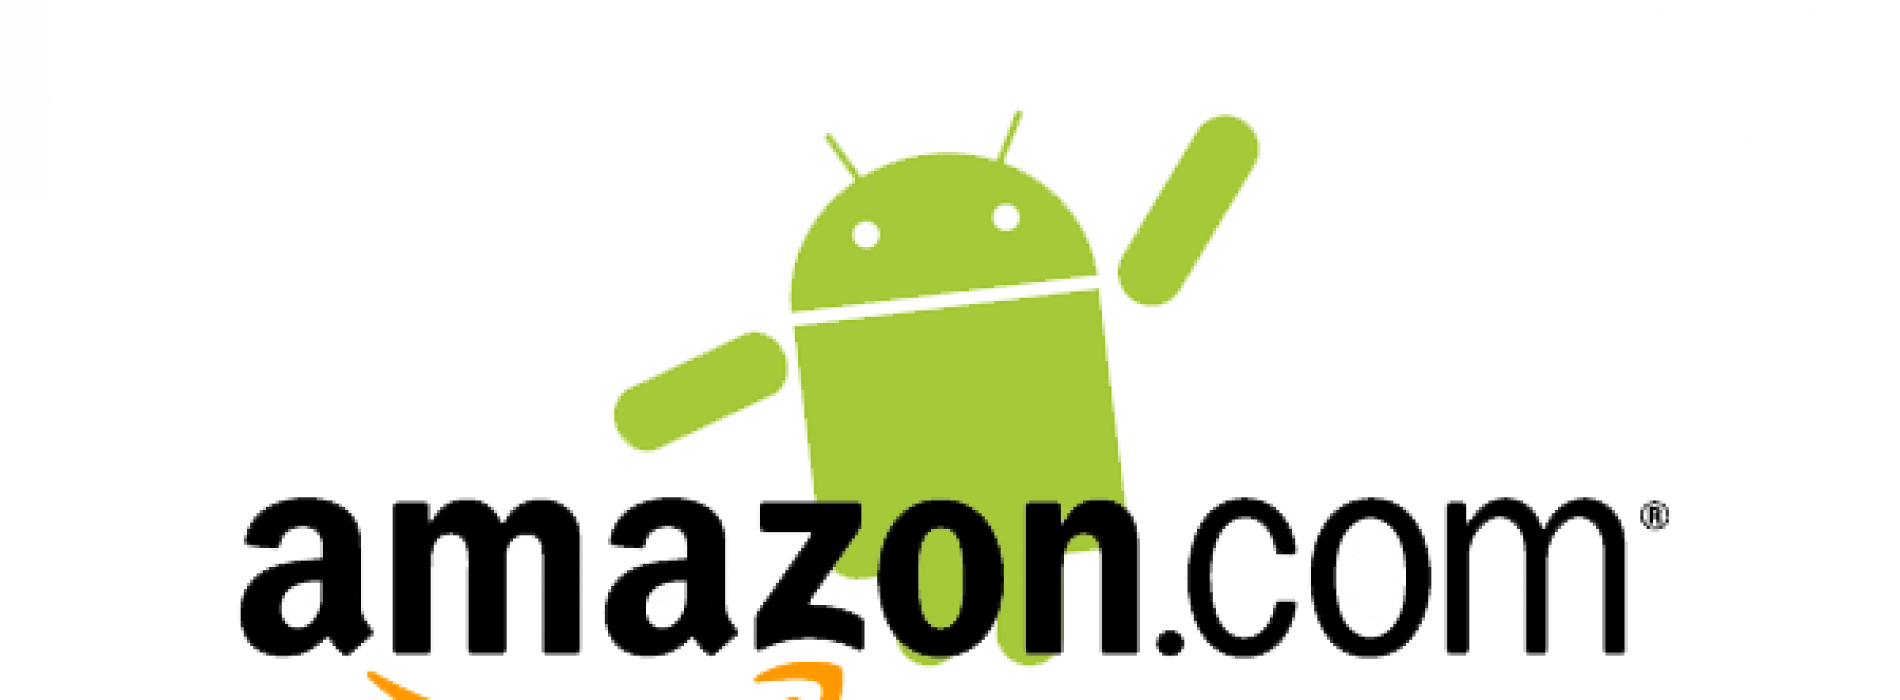 Amazon smartphone rumored for release in 2012